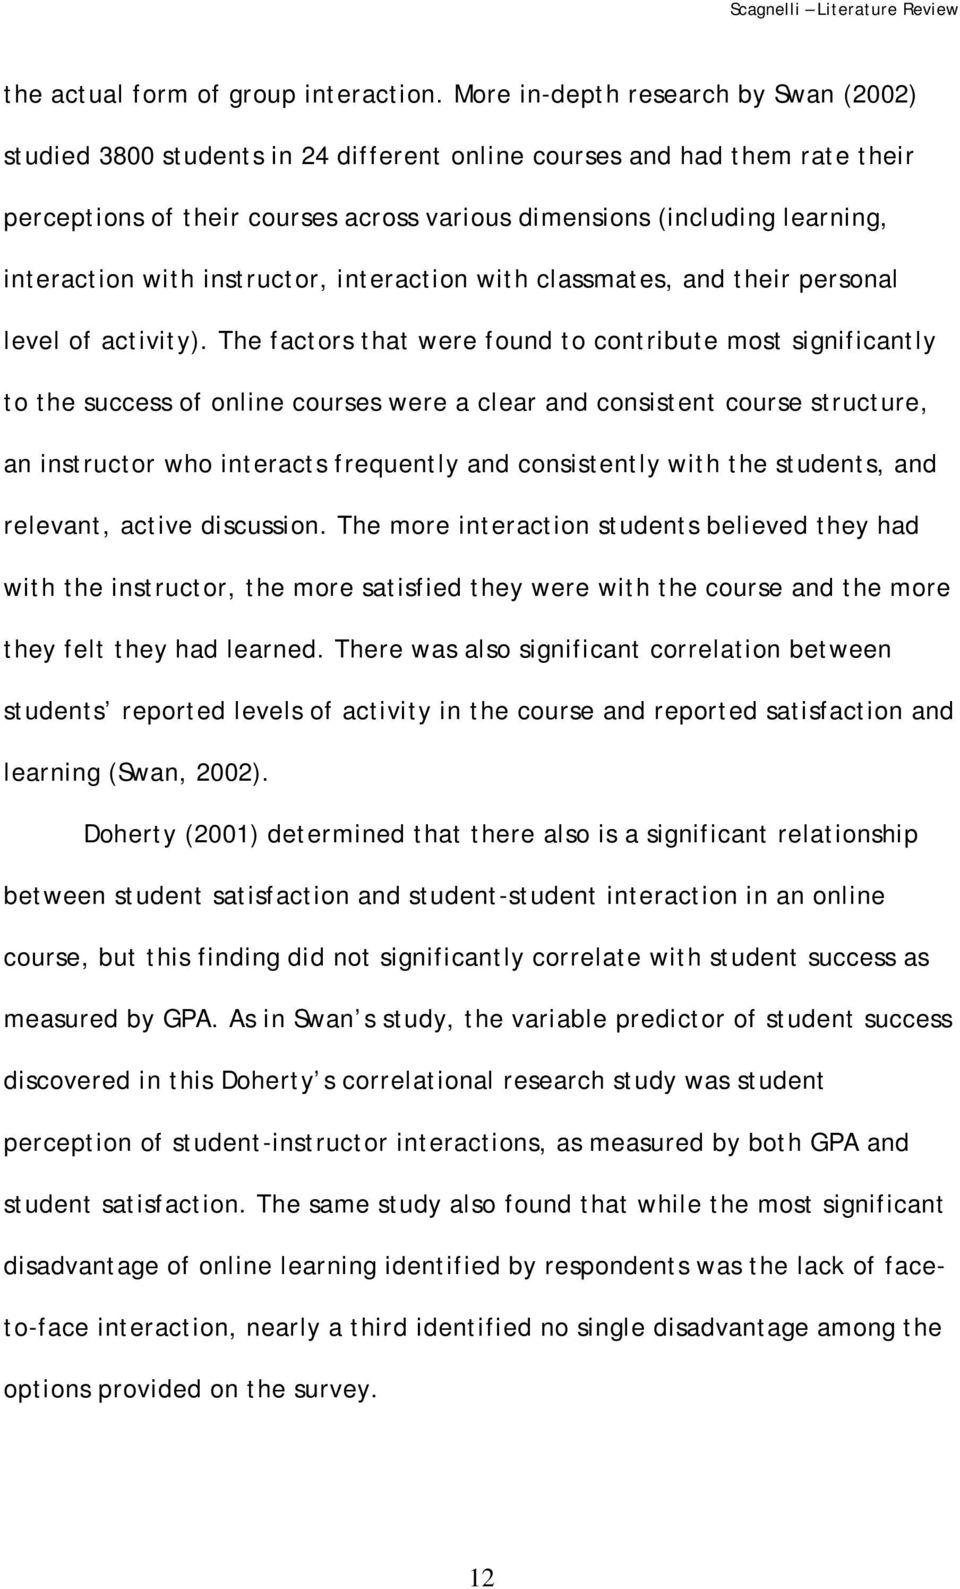 interaction with instructor, interaction with classmates, and their personal level of activity).